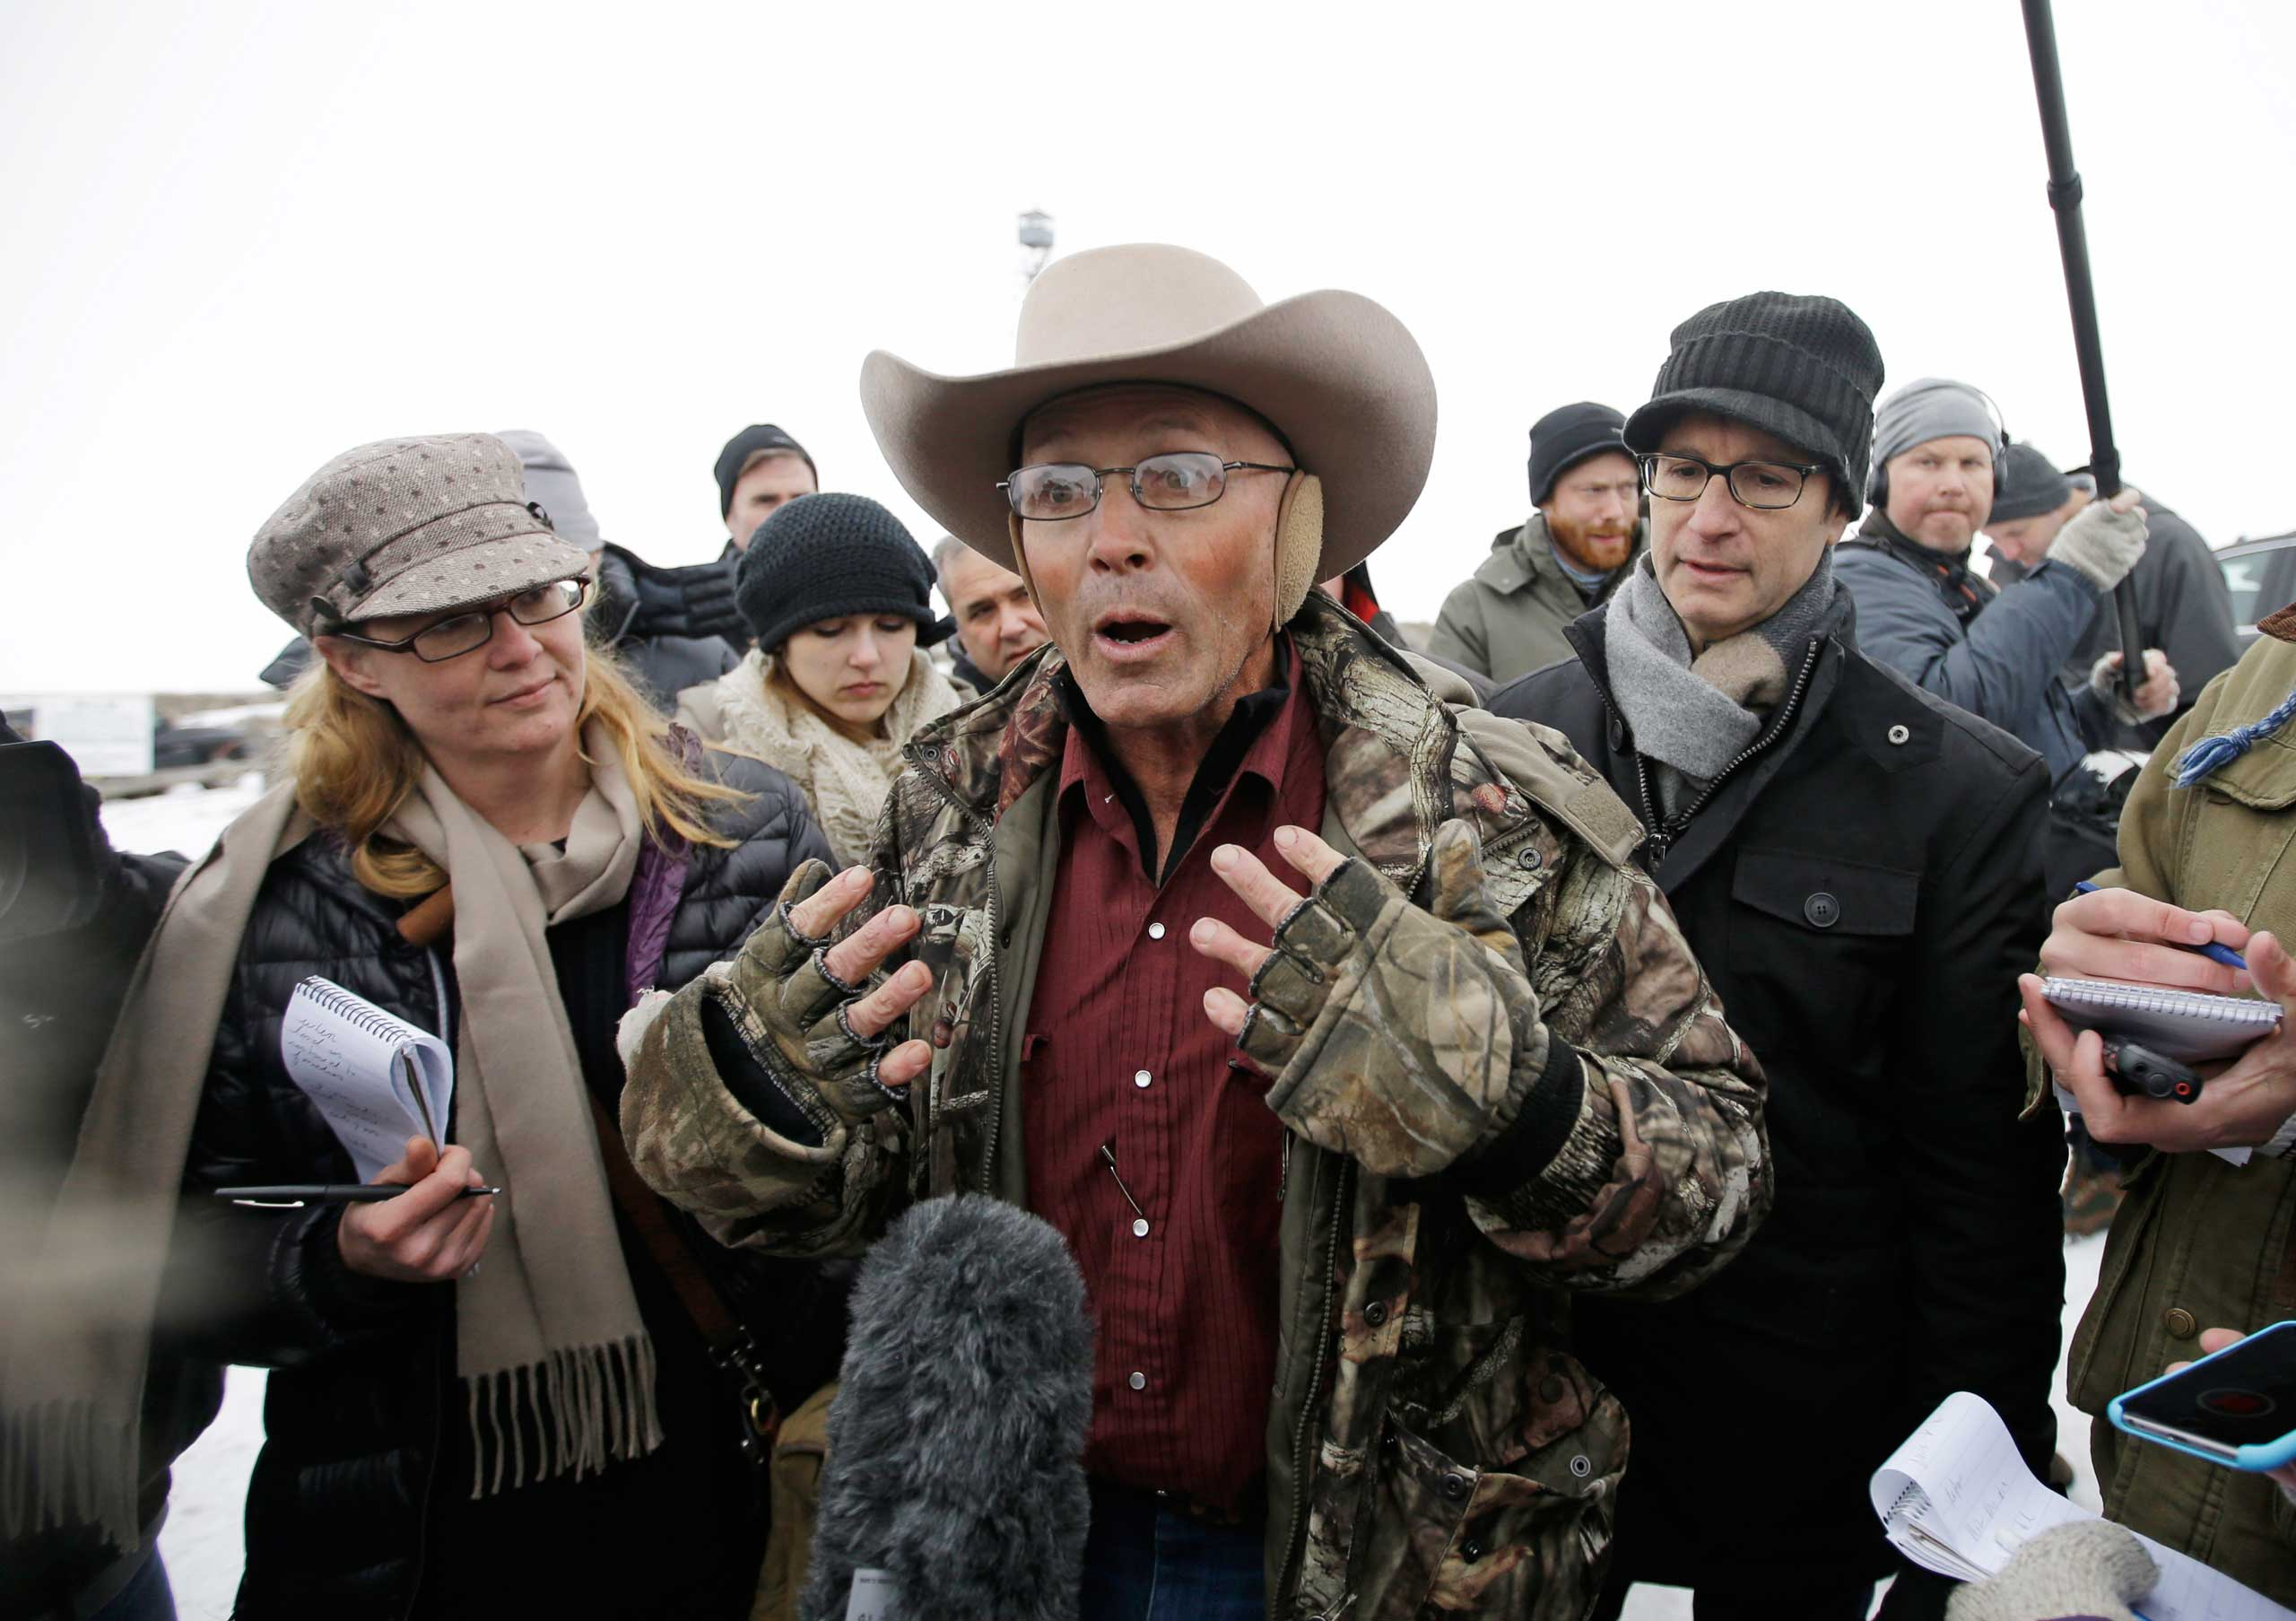 LaVoy Finicum, a rancher from Arizona who is part of the group occupying the Malheur National Wildlife Refuge, speaks during a news conference near Burns, Ore., on Jan. 5, 2016.